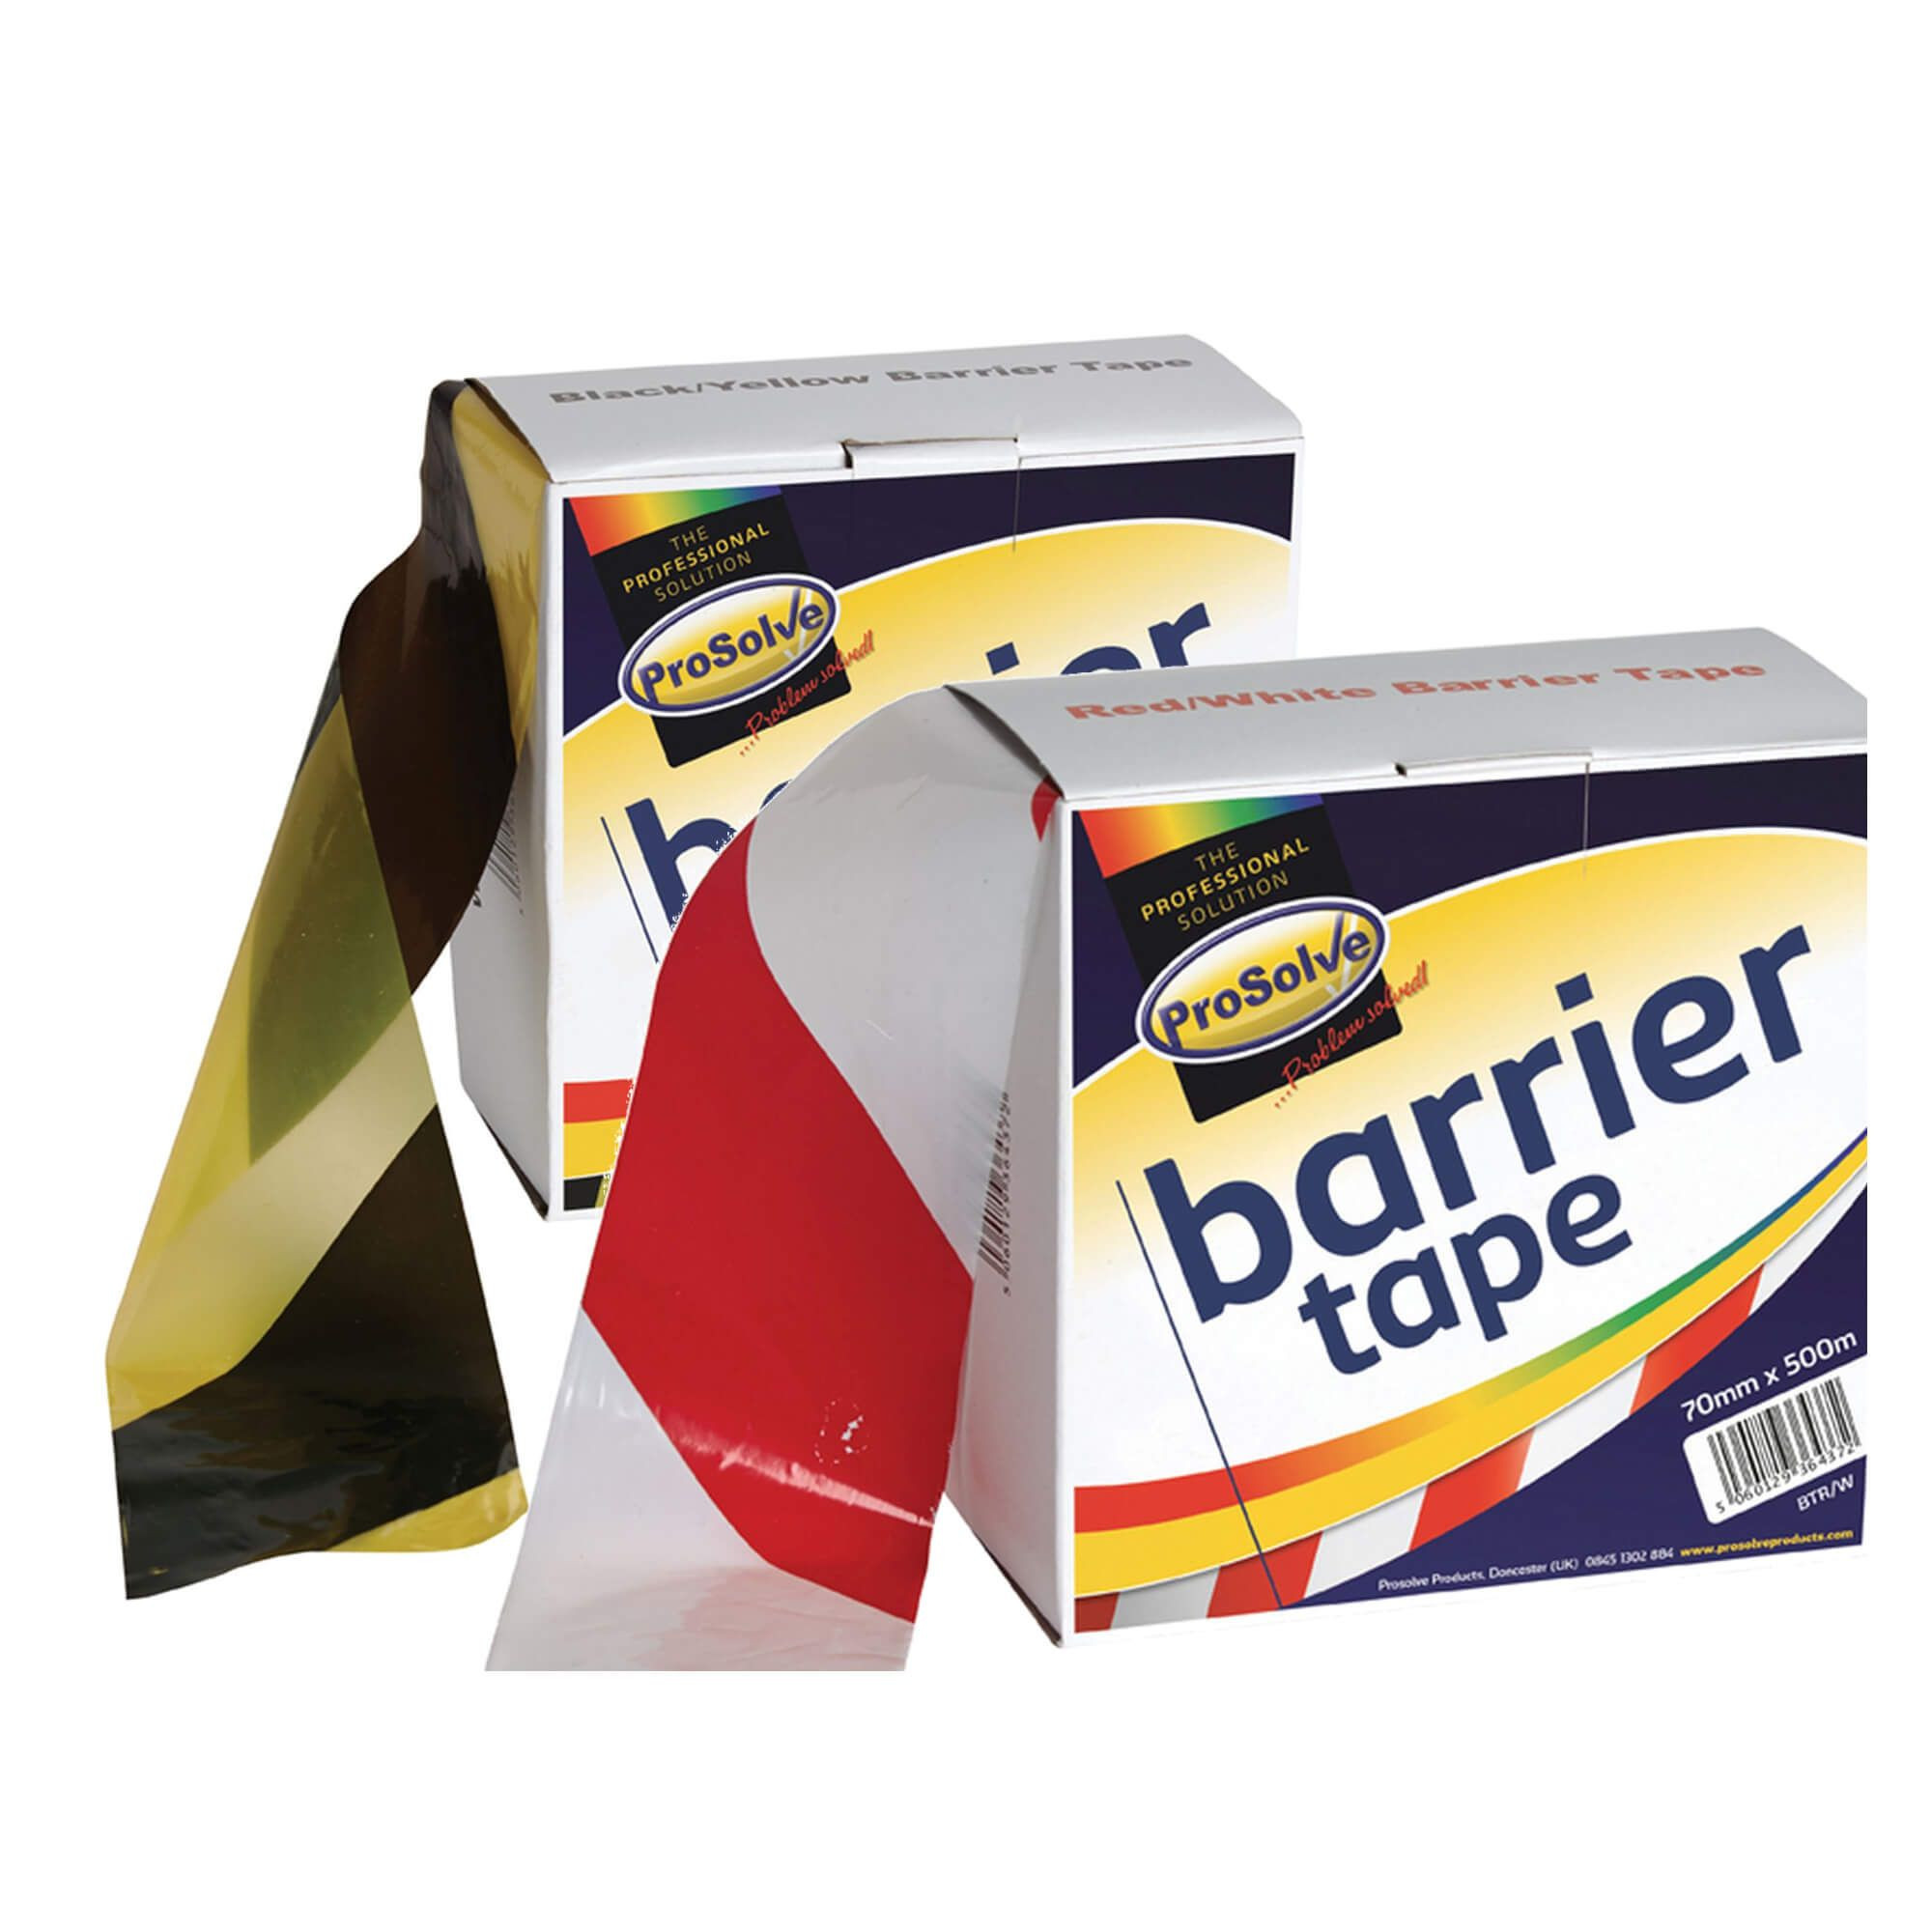 PROSOLVE? BARRIER TAPE